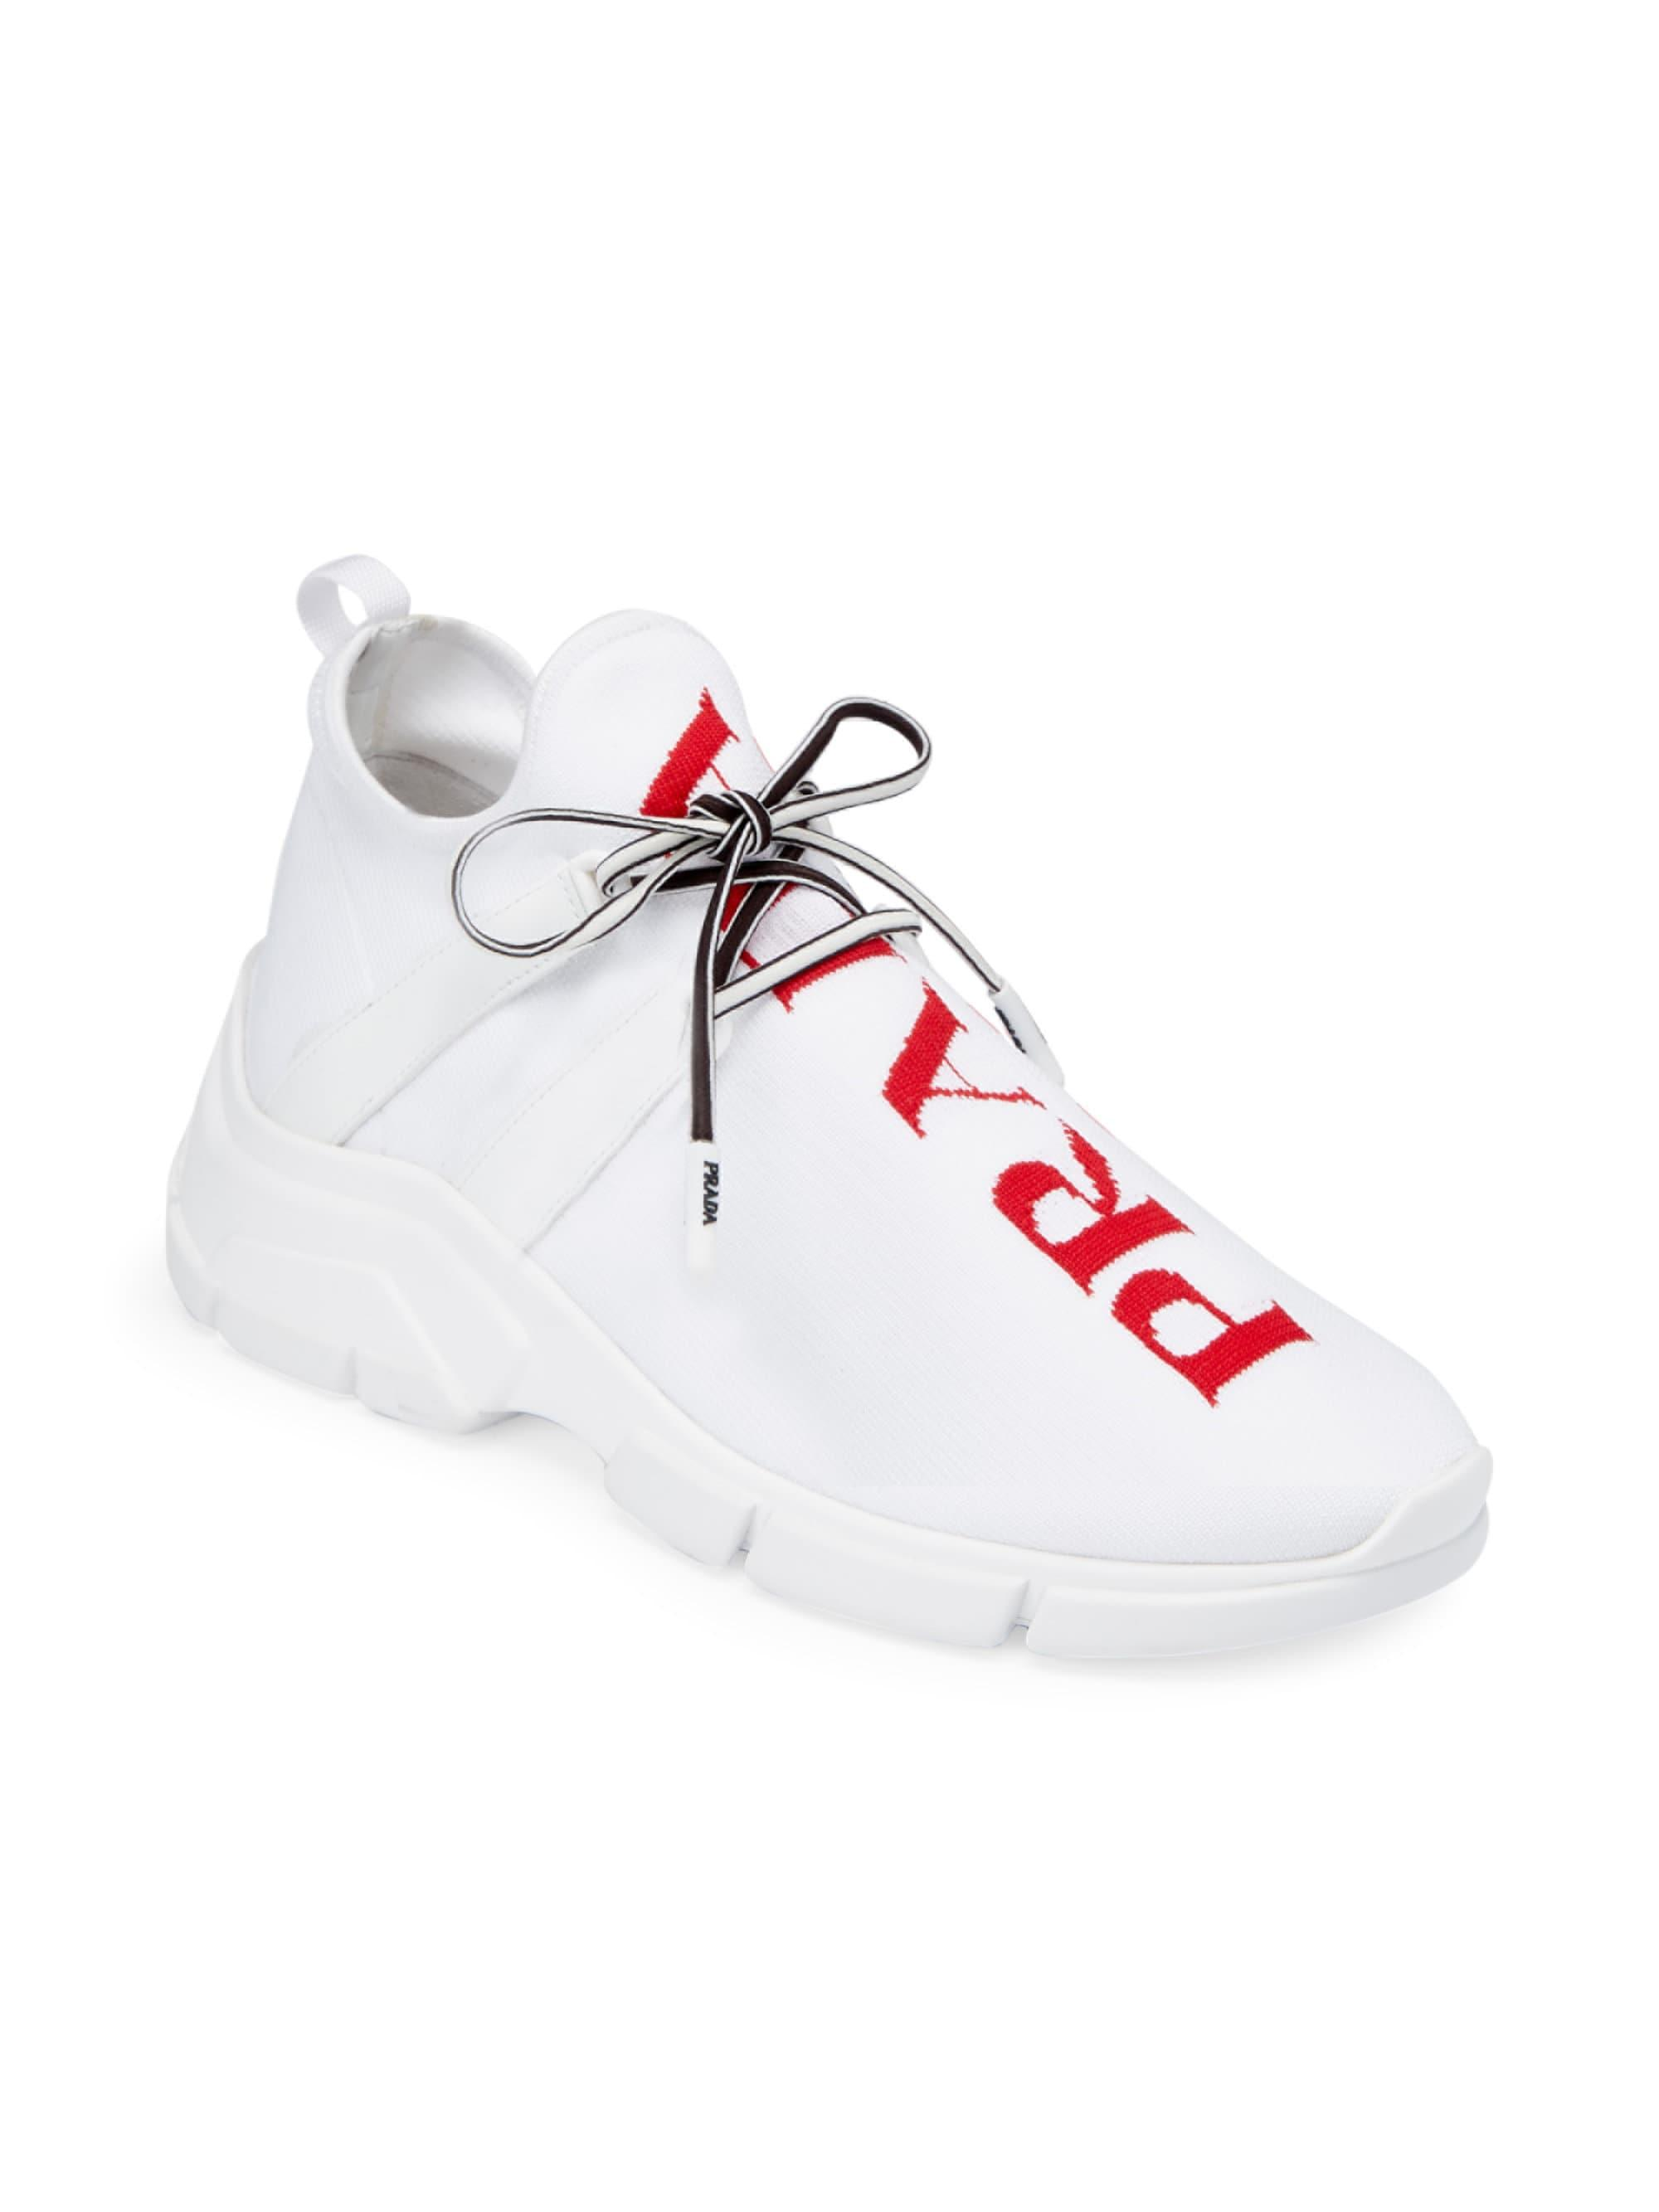 Prada - White Logo Knit Sneakers - Lyst. View fullscreen 52f623fc03